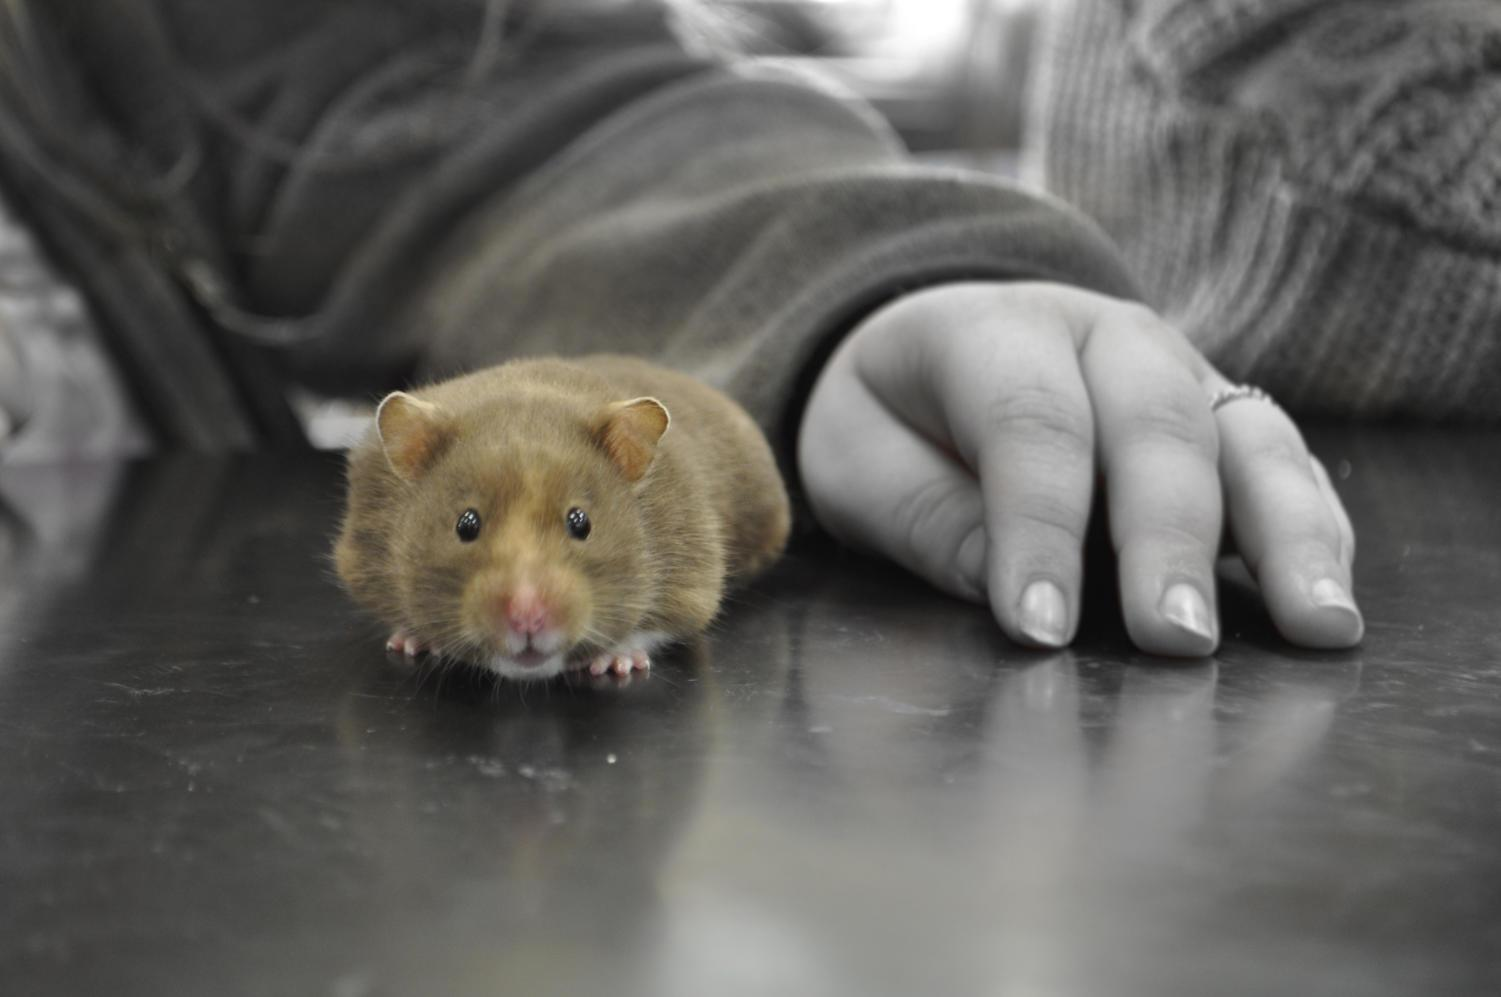 This is David Talcott's hamster, Scout, and many students enjoy playing with her.